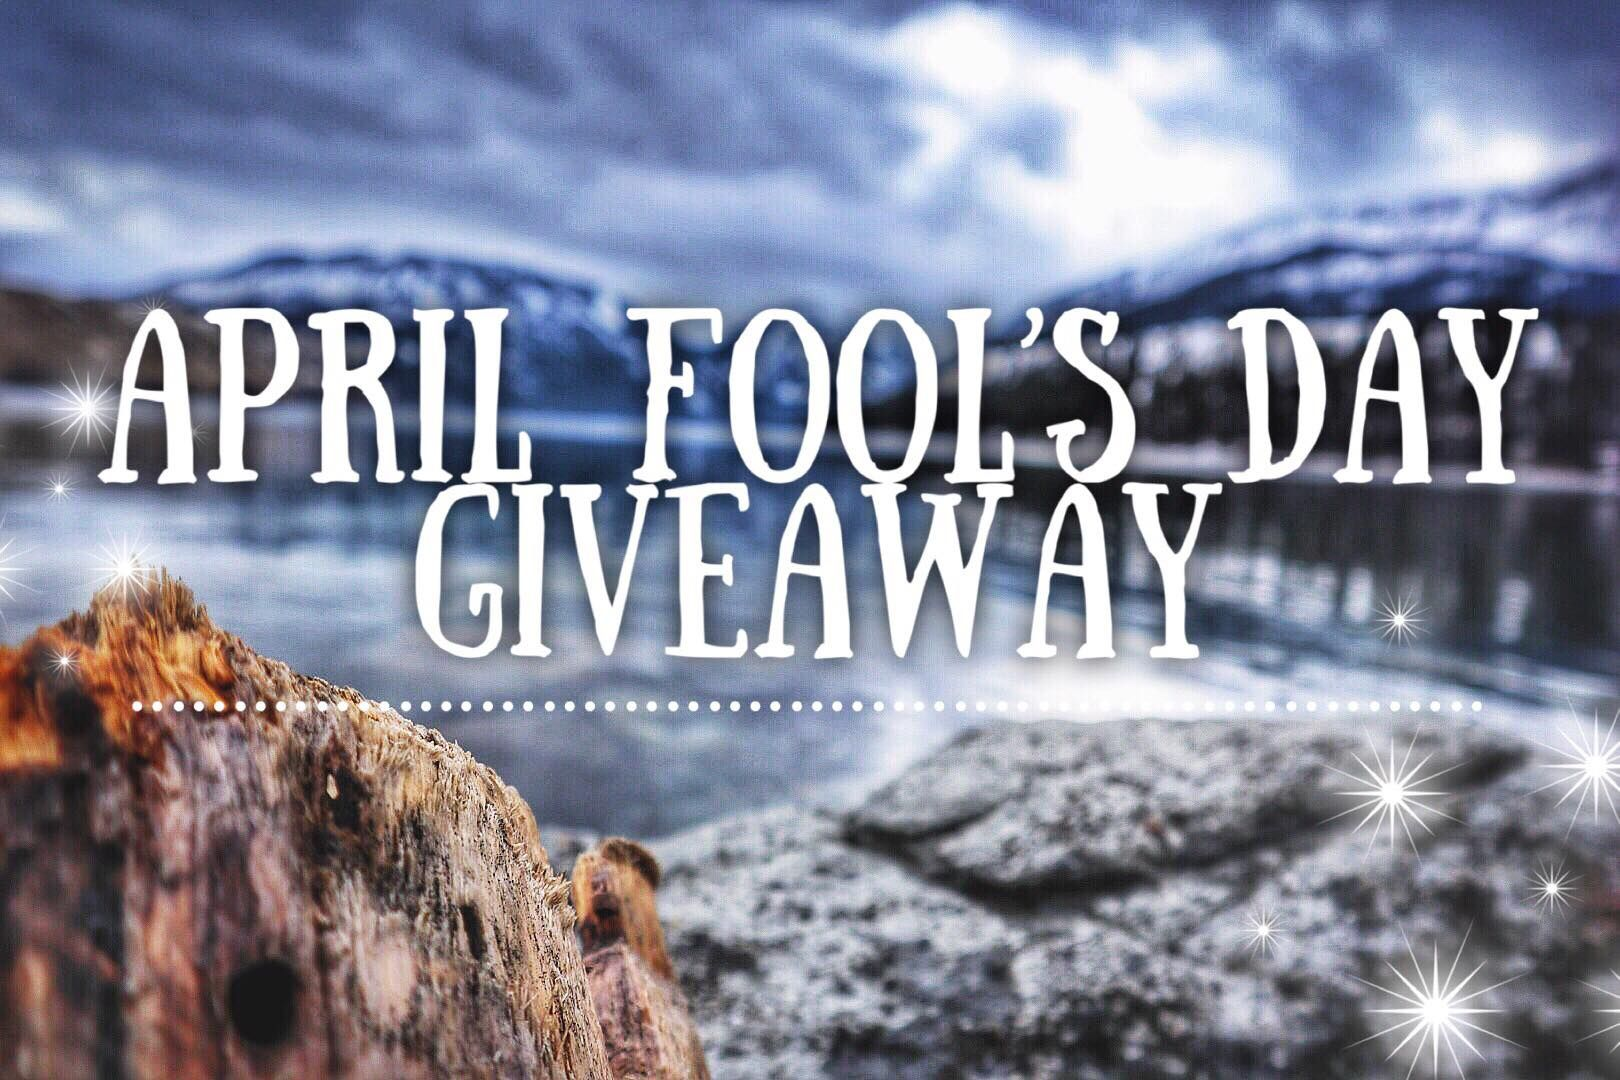 April fools day facebook giveaway go like our page to be